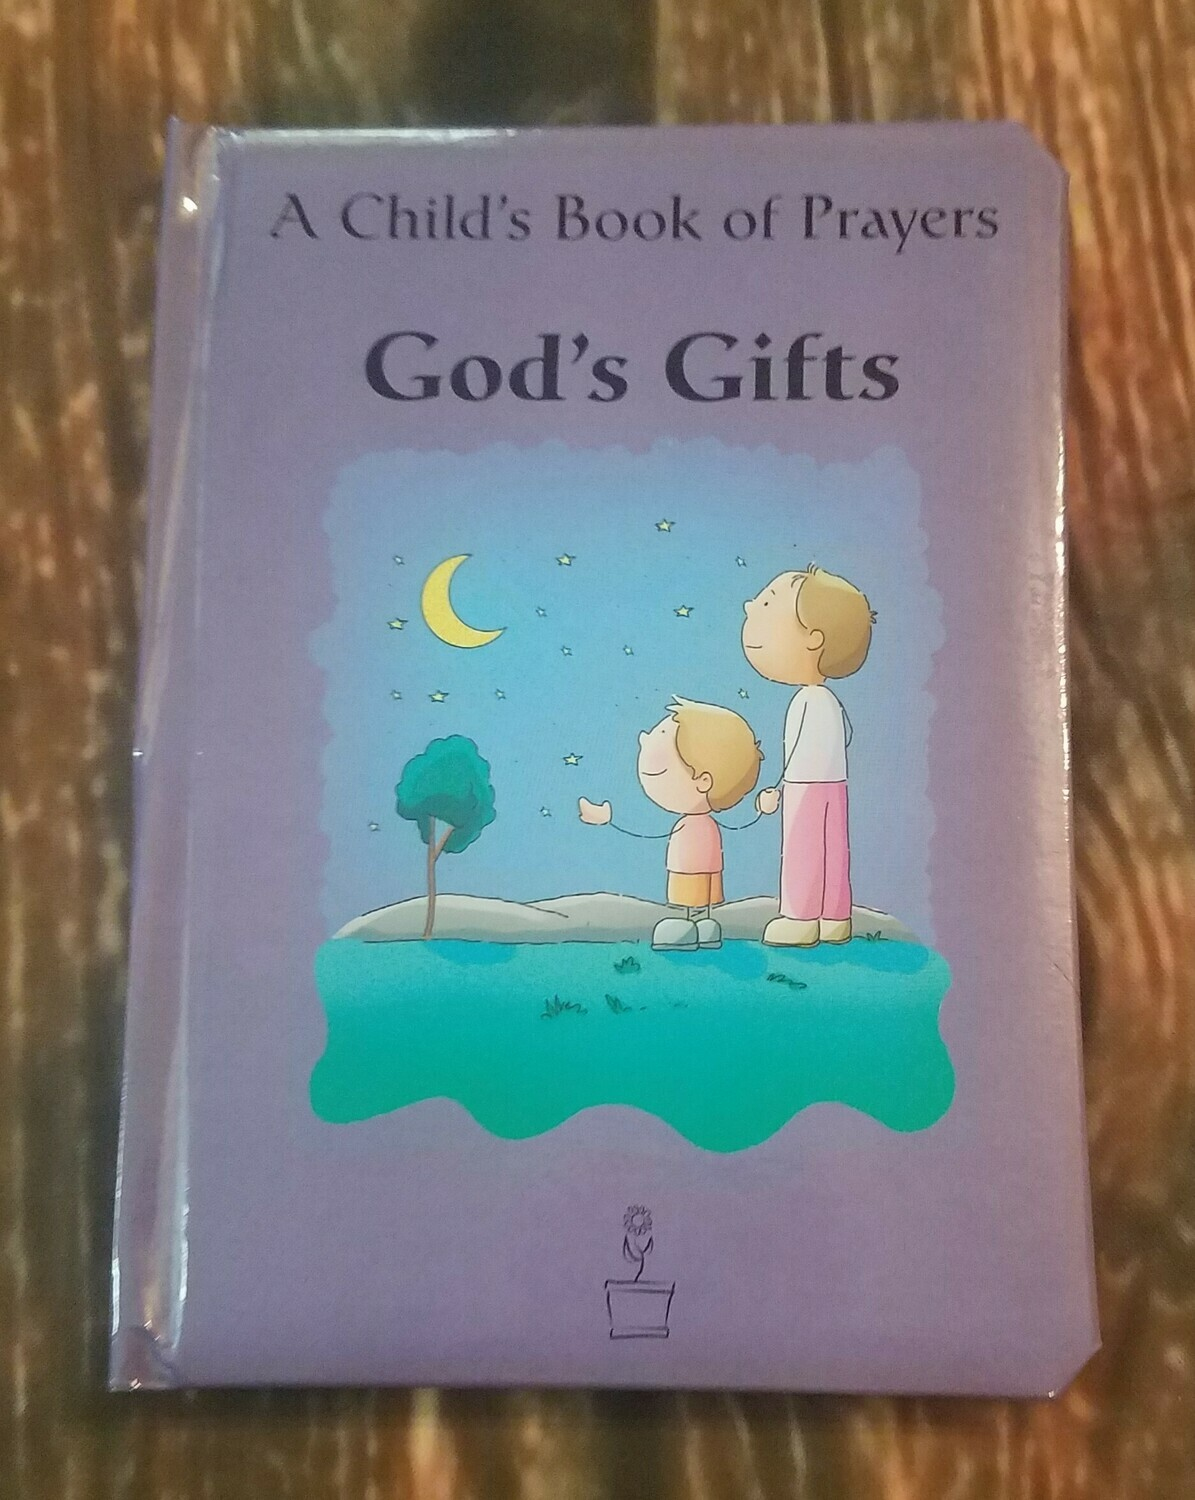 God's Gifts: A Child's Book of Prayers by Flowerpot Press